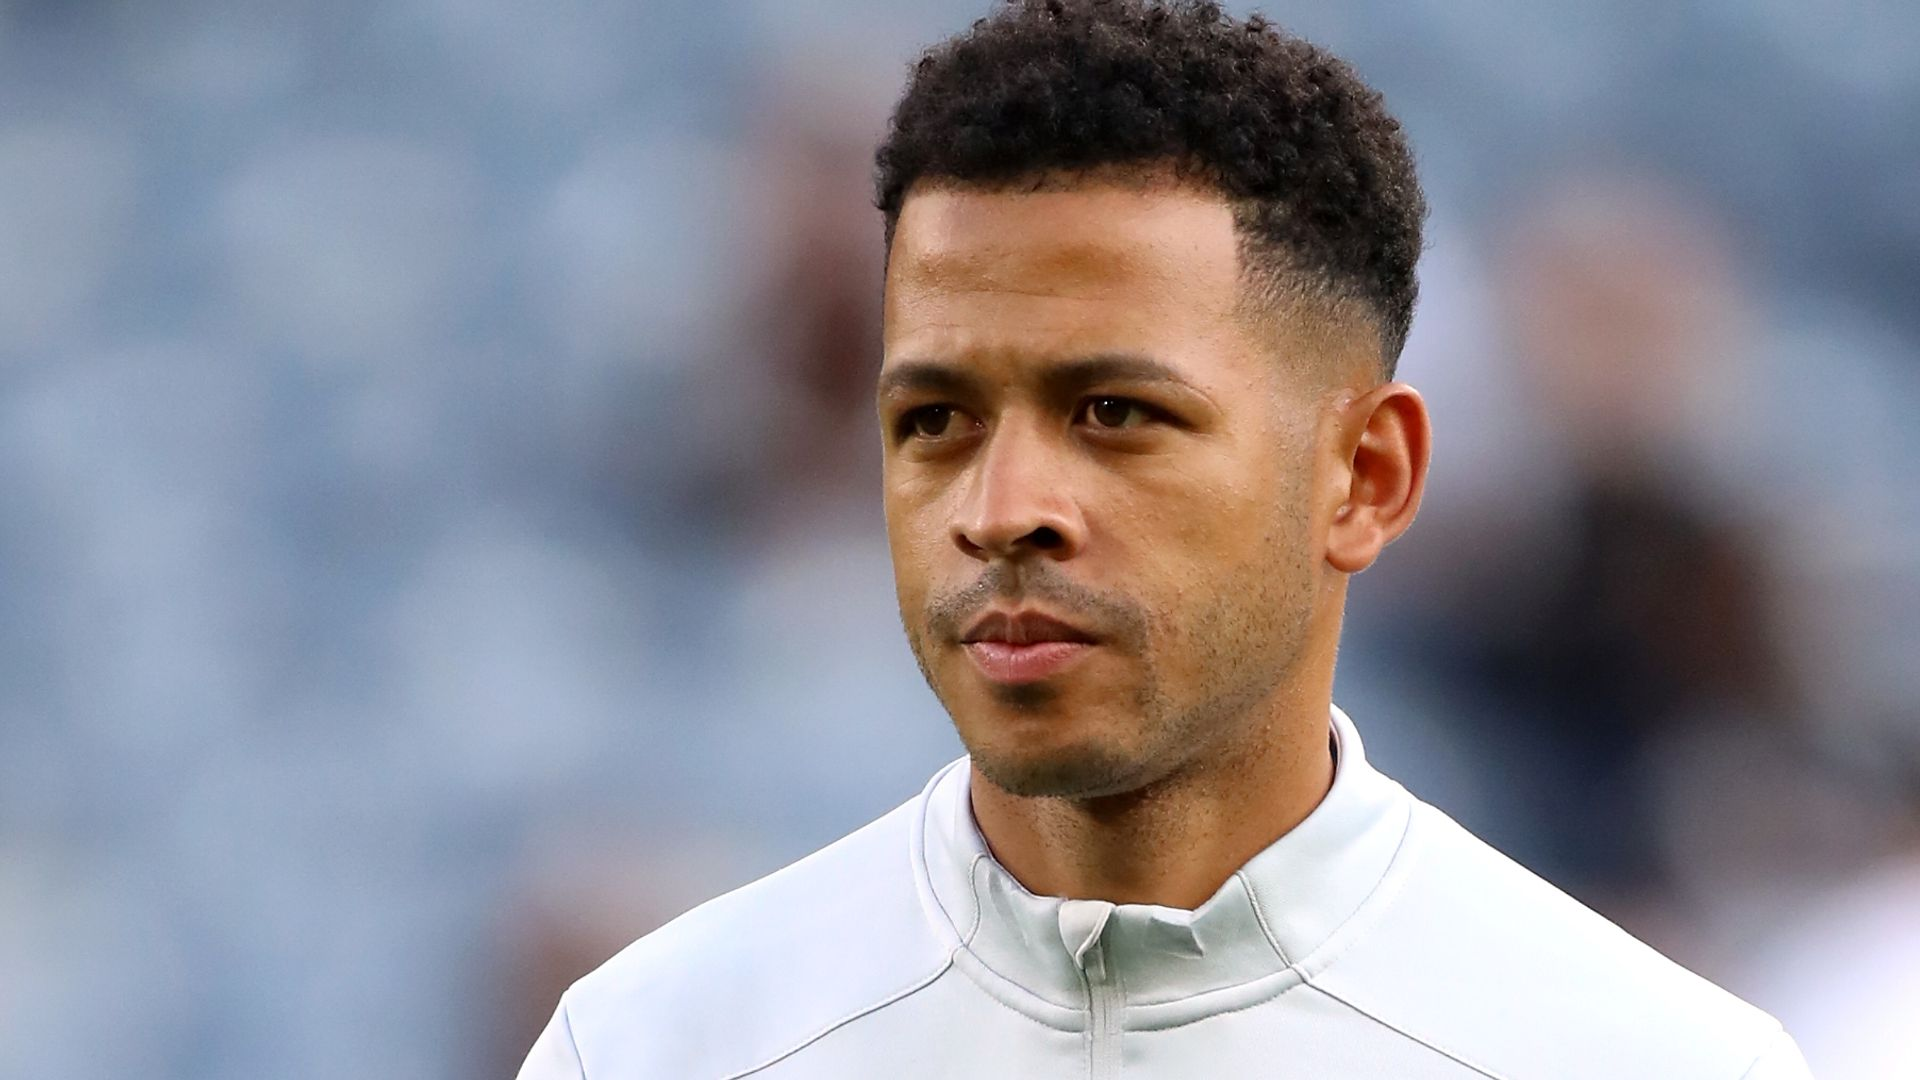 Rosenior: My letter to Trump - and advice to players